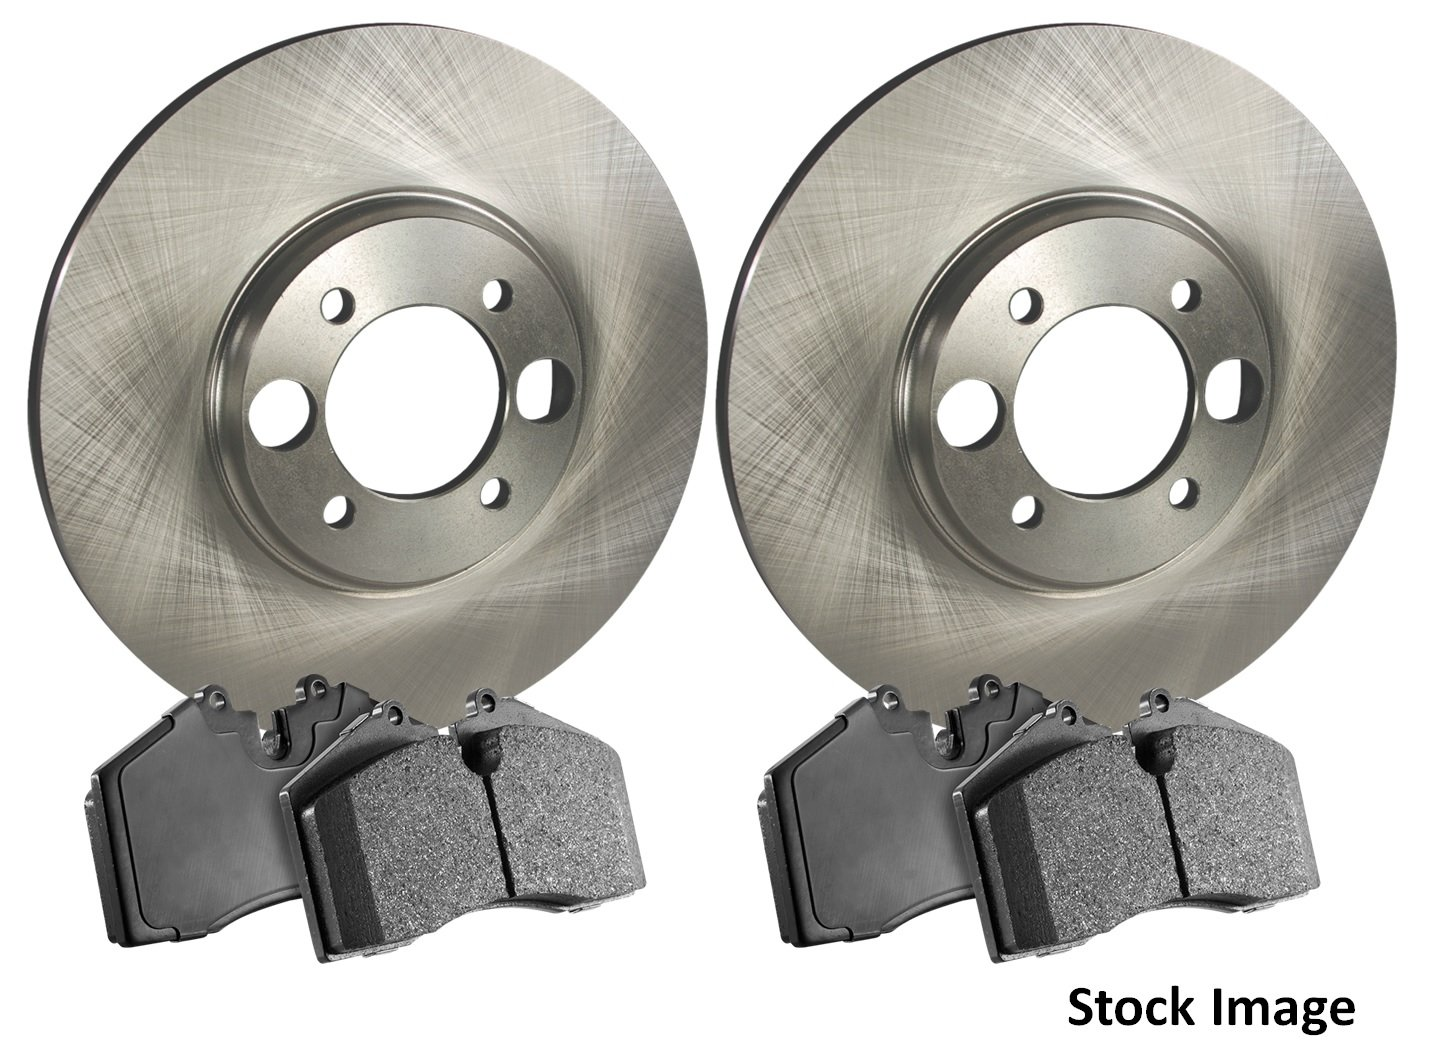 Note: 300mm 2007 For Volvo S80 Front Disc Brake Rotors and Ceramic Brake Pads